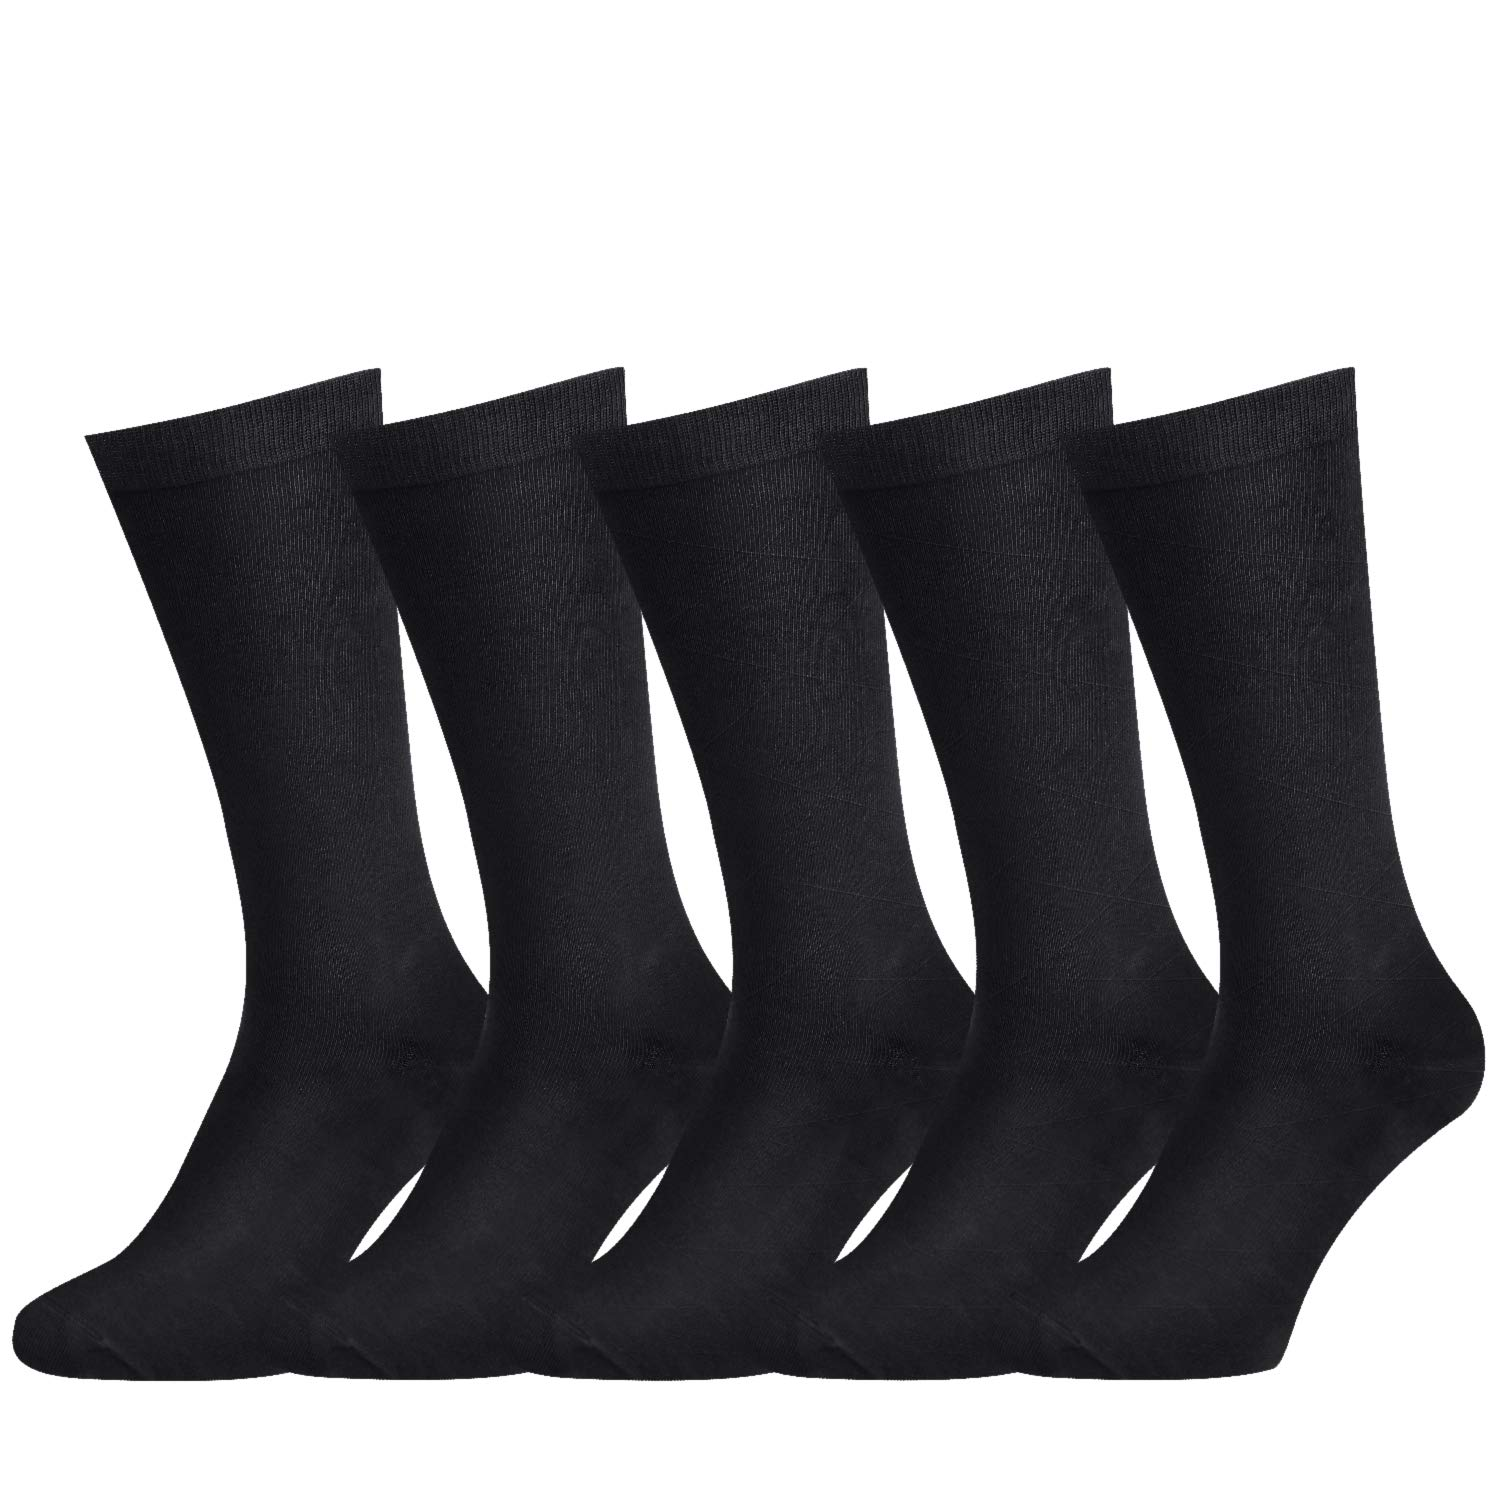 Mens Cotton Seamless Toe and Non-Binding Top Men Casual Dress Socks Fit Size 8.5-13 by Corlap Mens Dress Socks